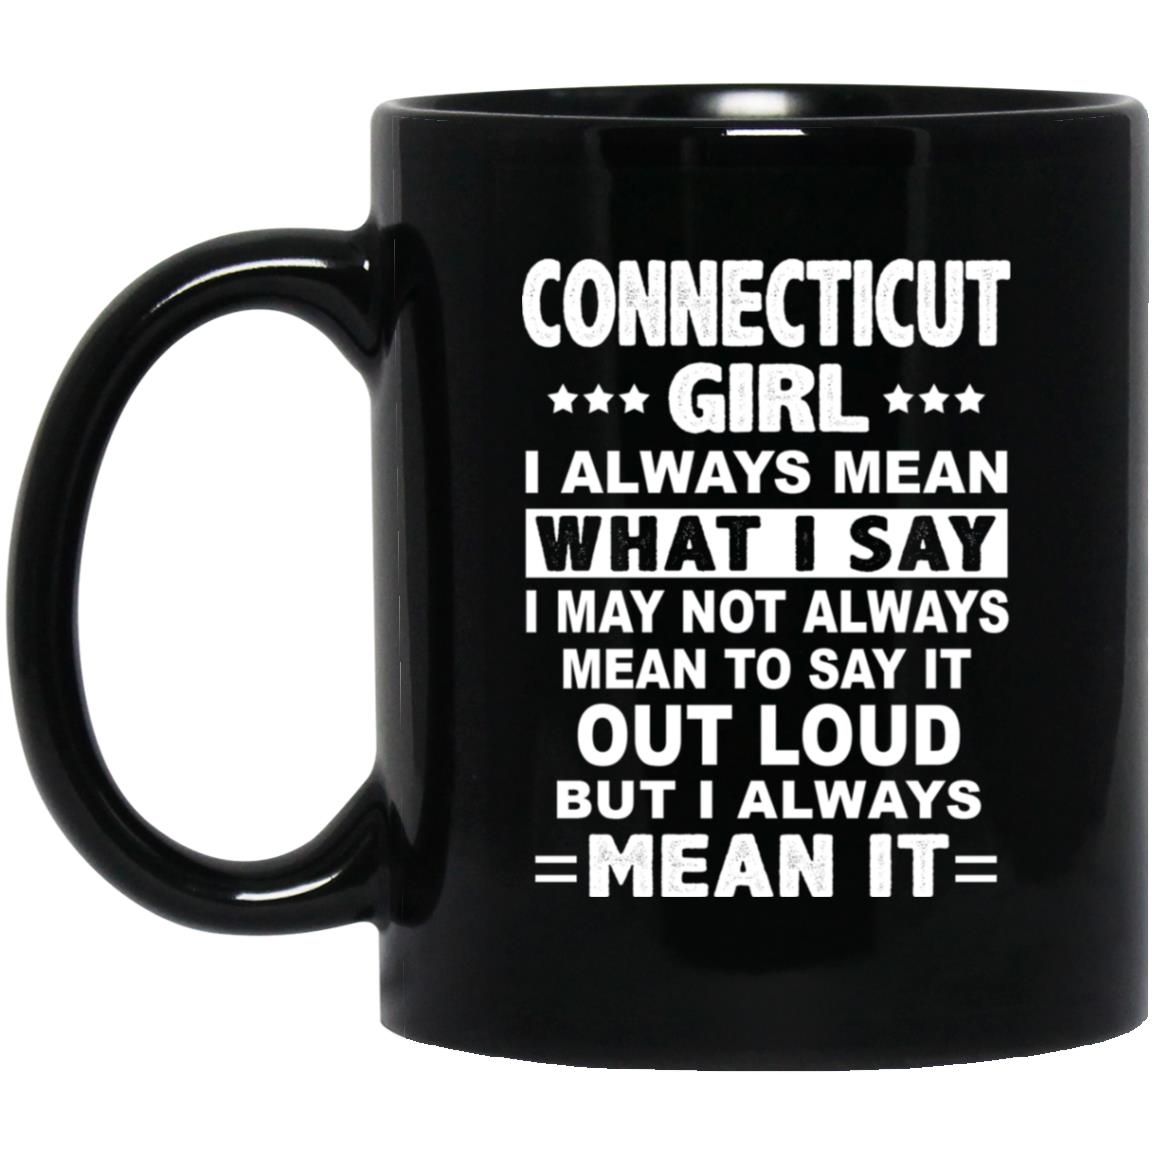 Connecticut Girl I Always Mean What I Say Mug